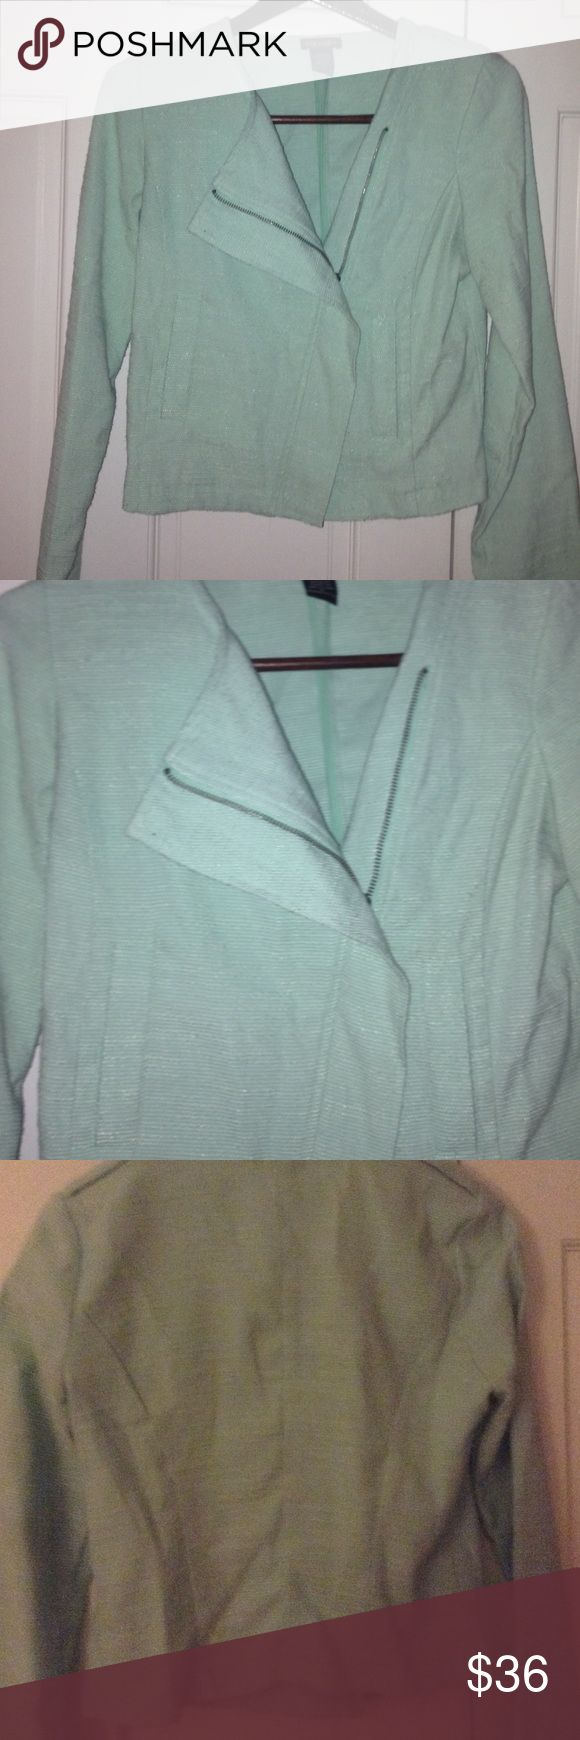 Nordstrom Mint Green Blazer Jacket! Nordstrom Mint Green Blazer Jacket! A beautiful jacket that goes perfectly with any top or dress! Nordstrom Jackets & Coats